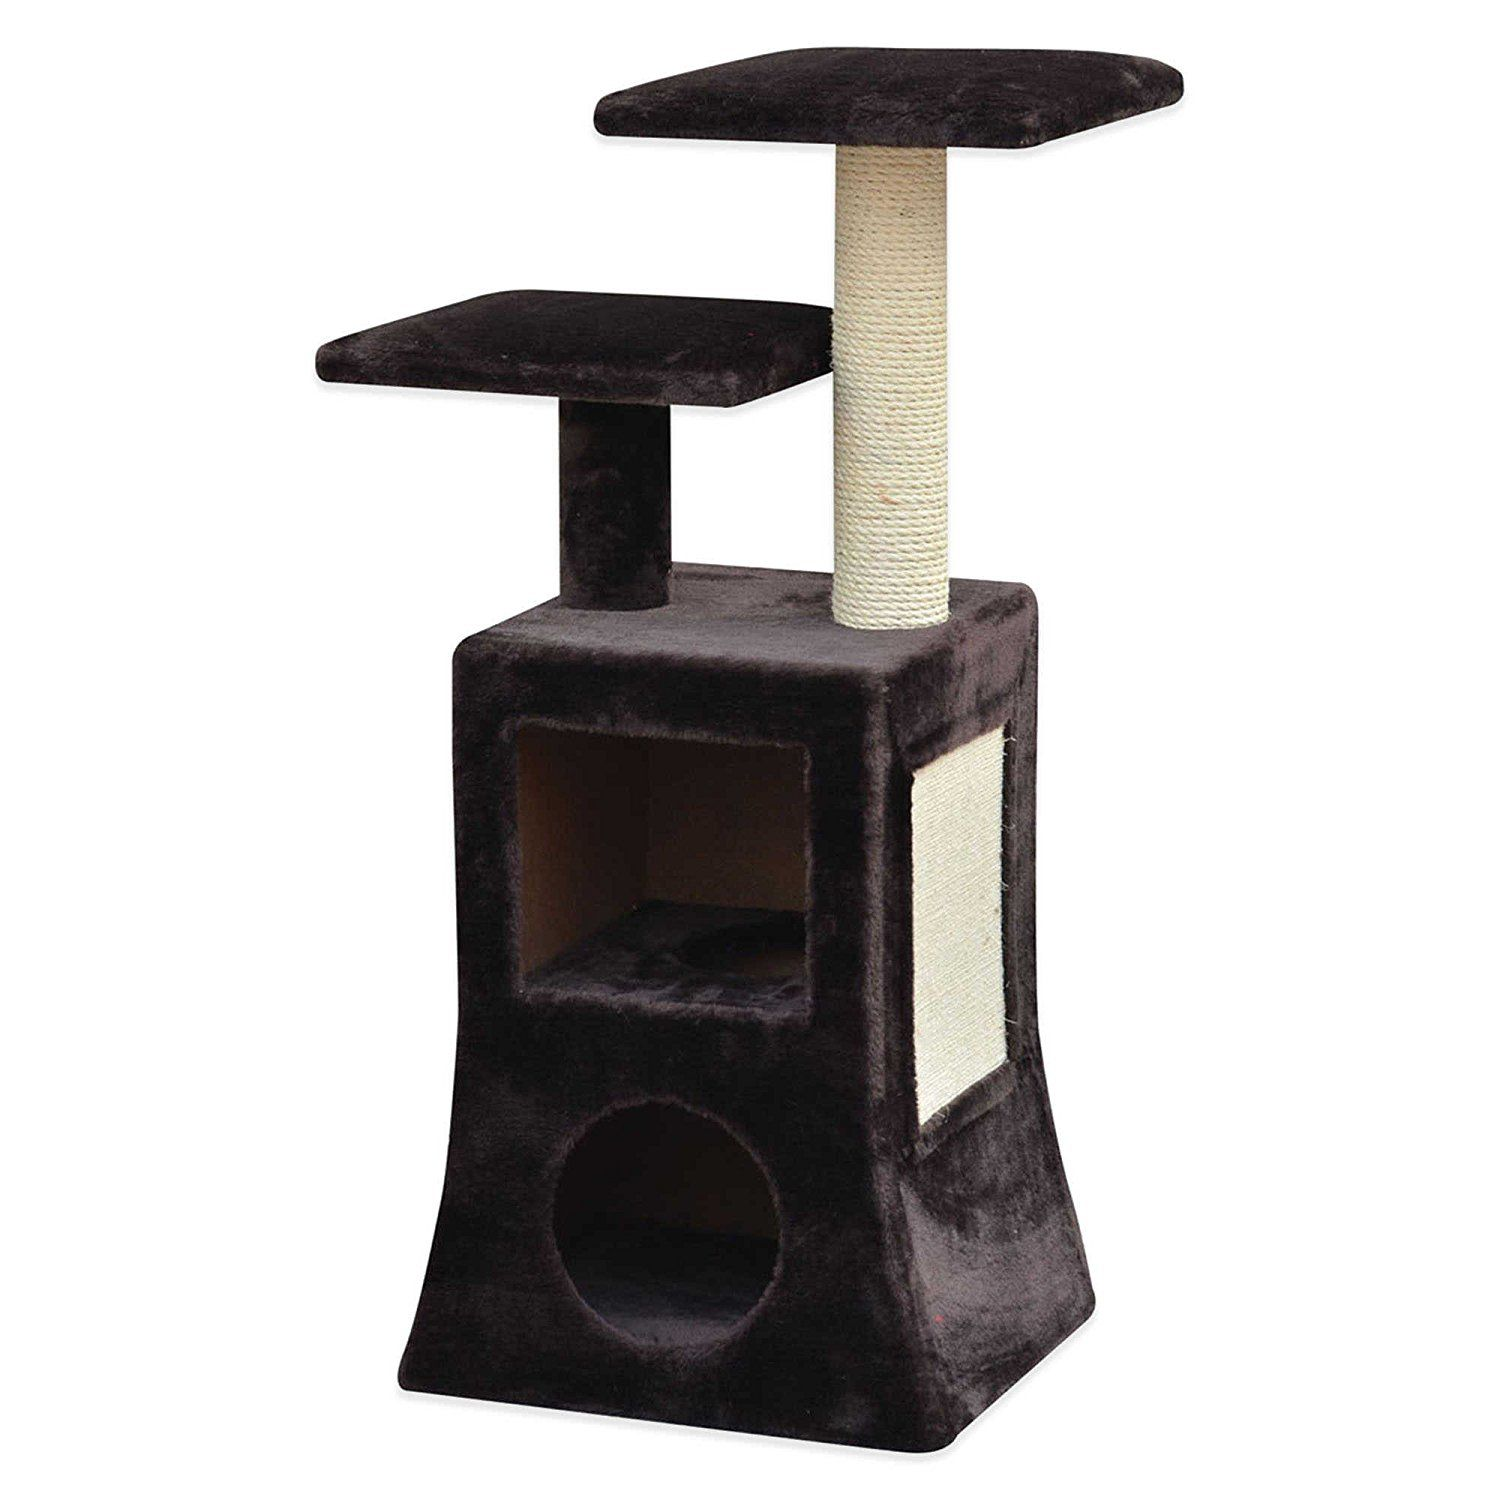 Pet Pals Modern 2 Tier Cat Condo With Fleece And Sisal In Brown White Save This Wonderfull Item Cat House Ideias